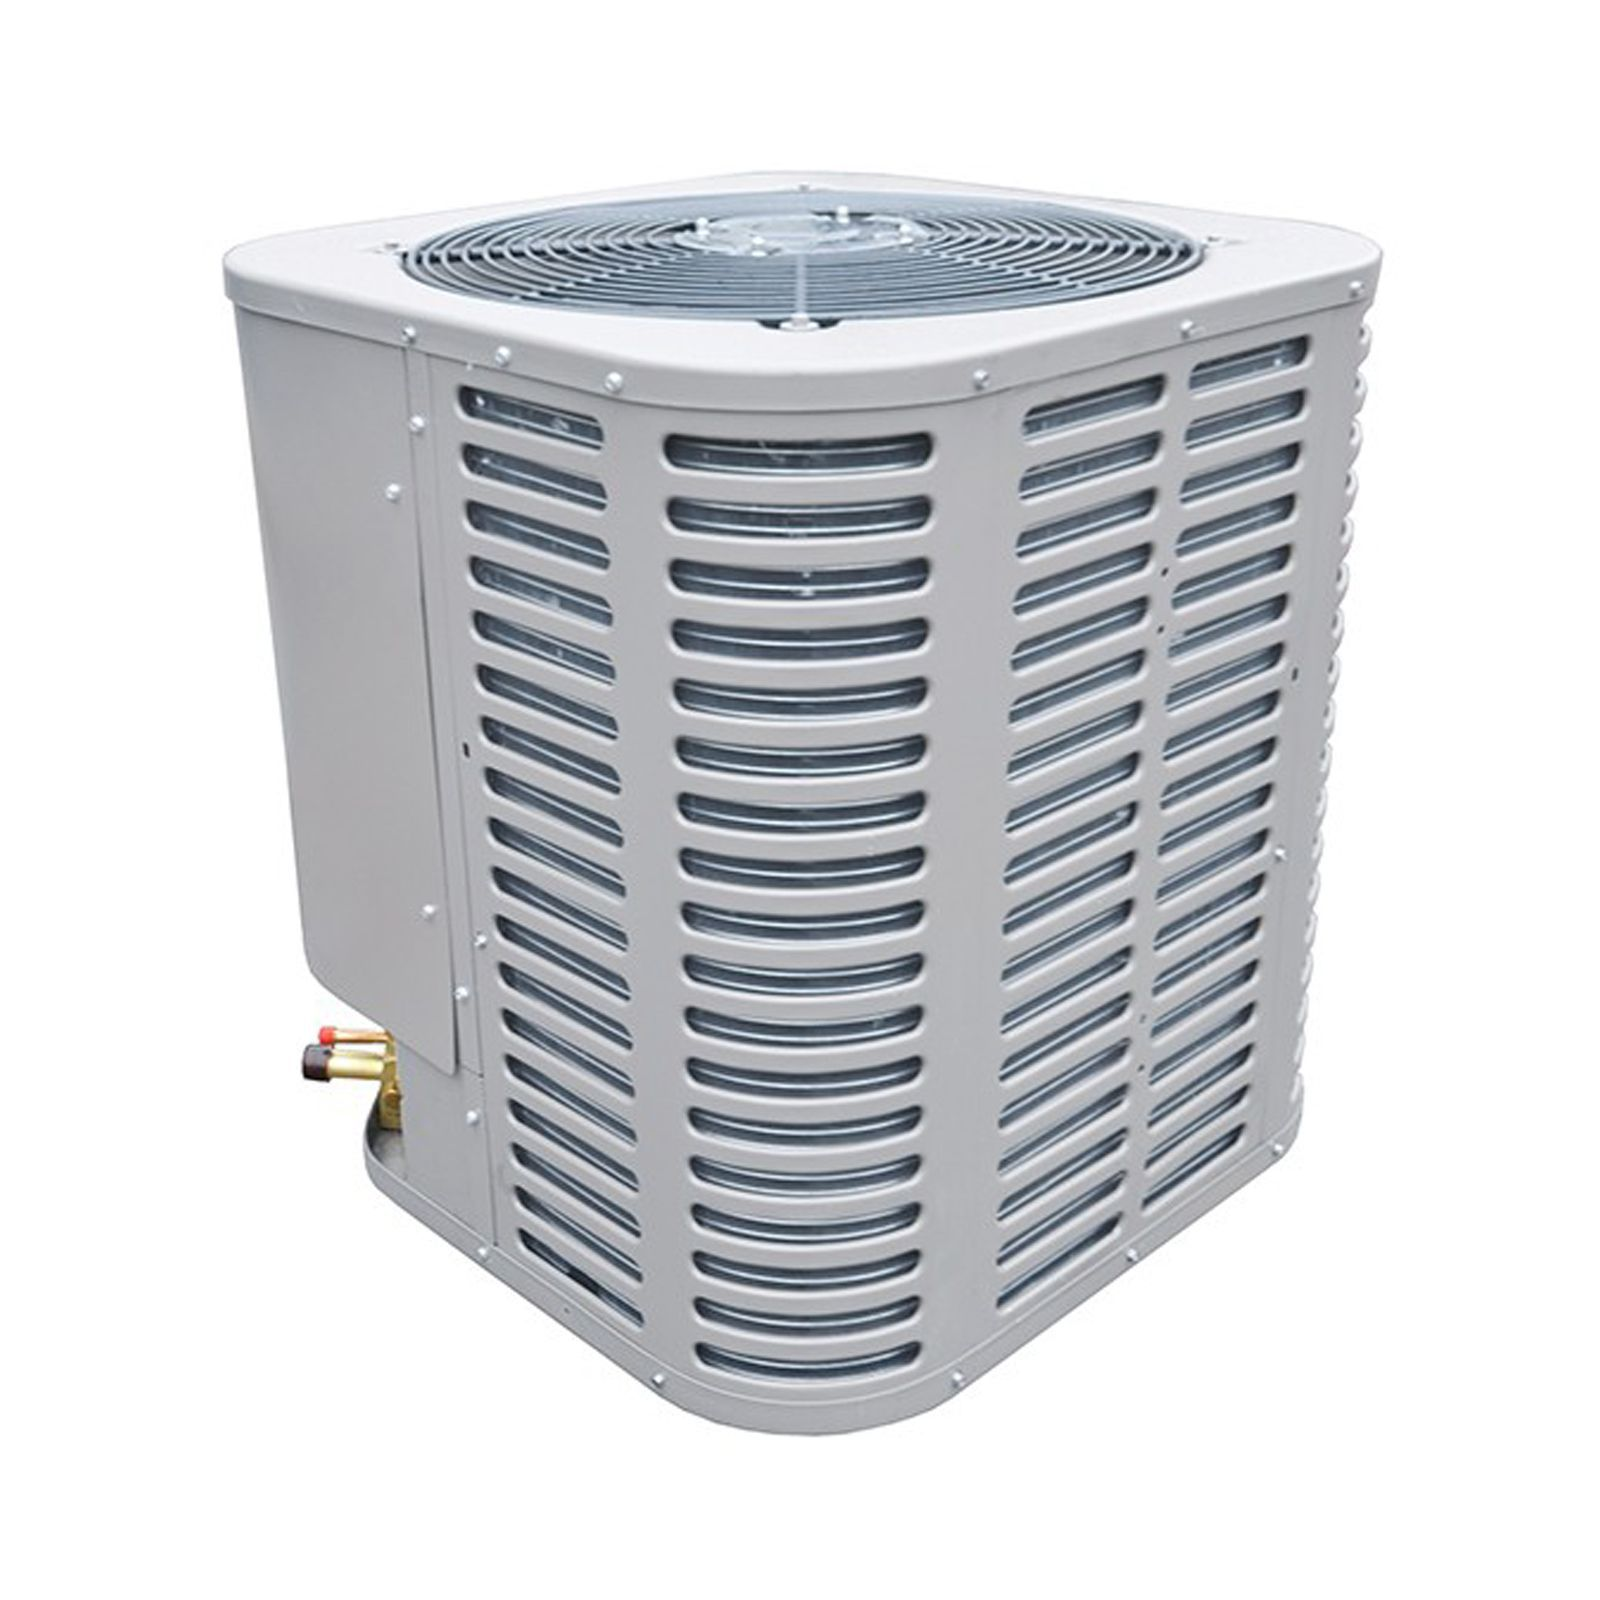 Ameristar M4AC4048C1000A - Air Conditioner, 4 Ton, 14 SEER, R410A, 208-230/1/60